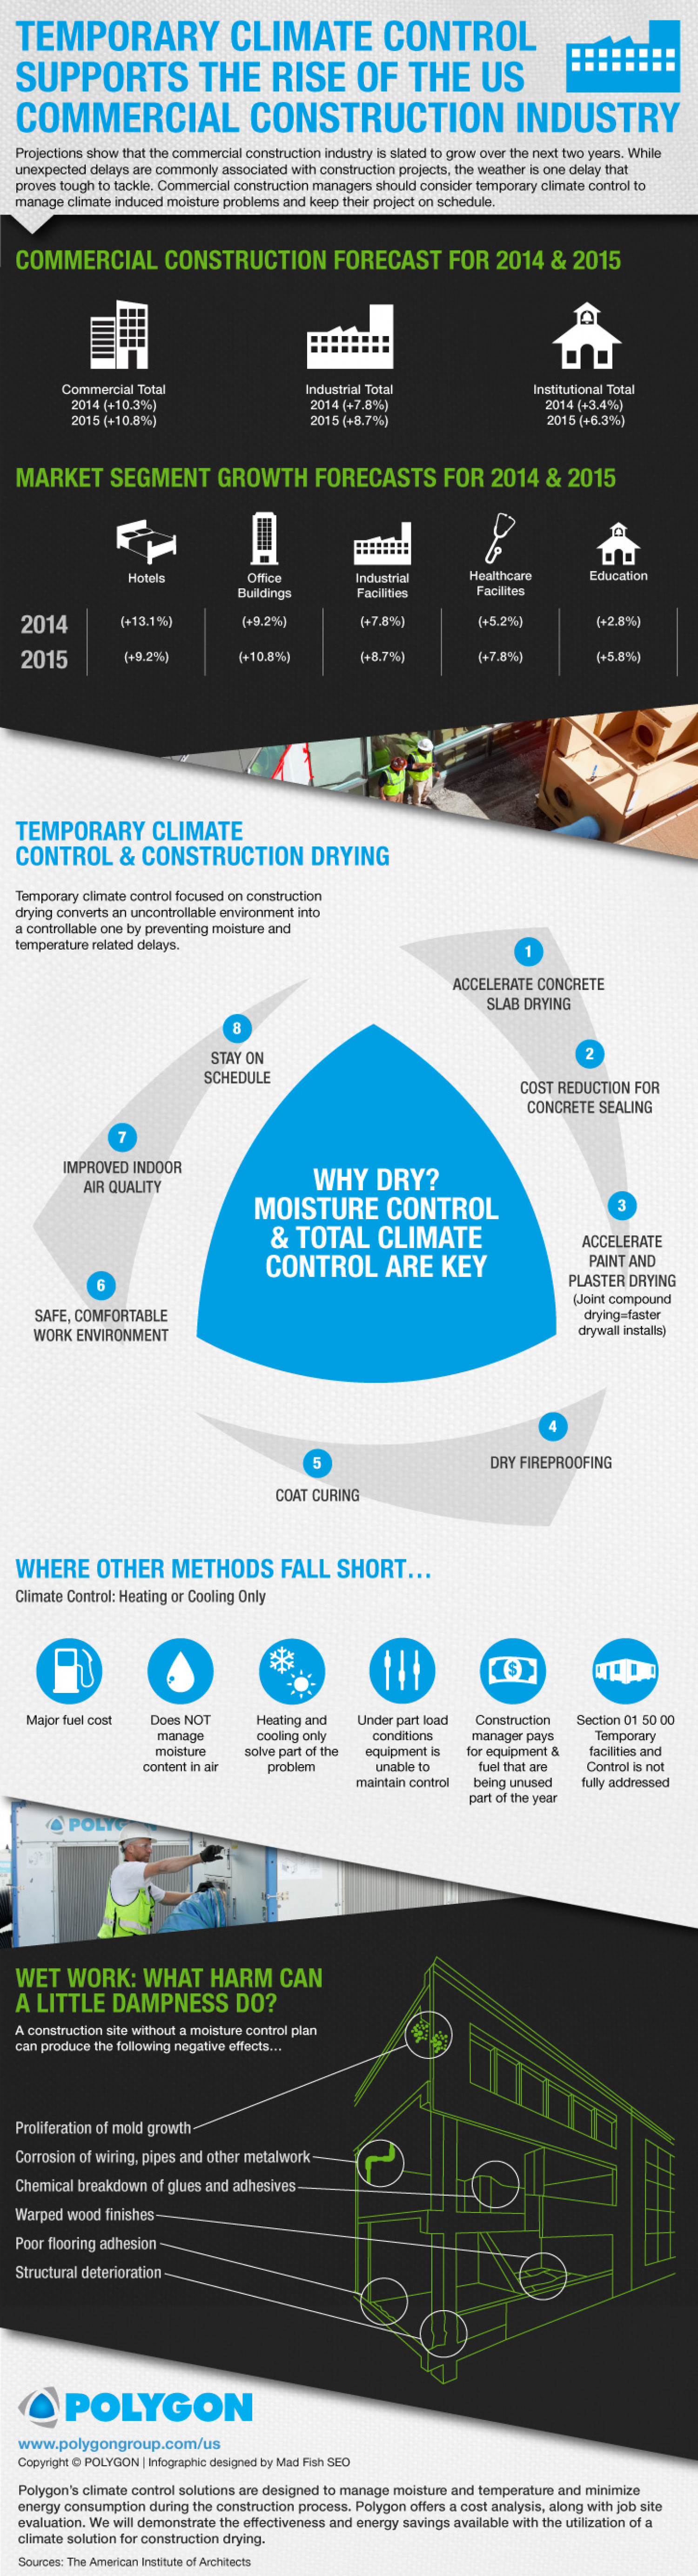 Temporary Climate Control Supports the Rise of the U.S. Commercial Construction Industry Infographic